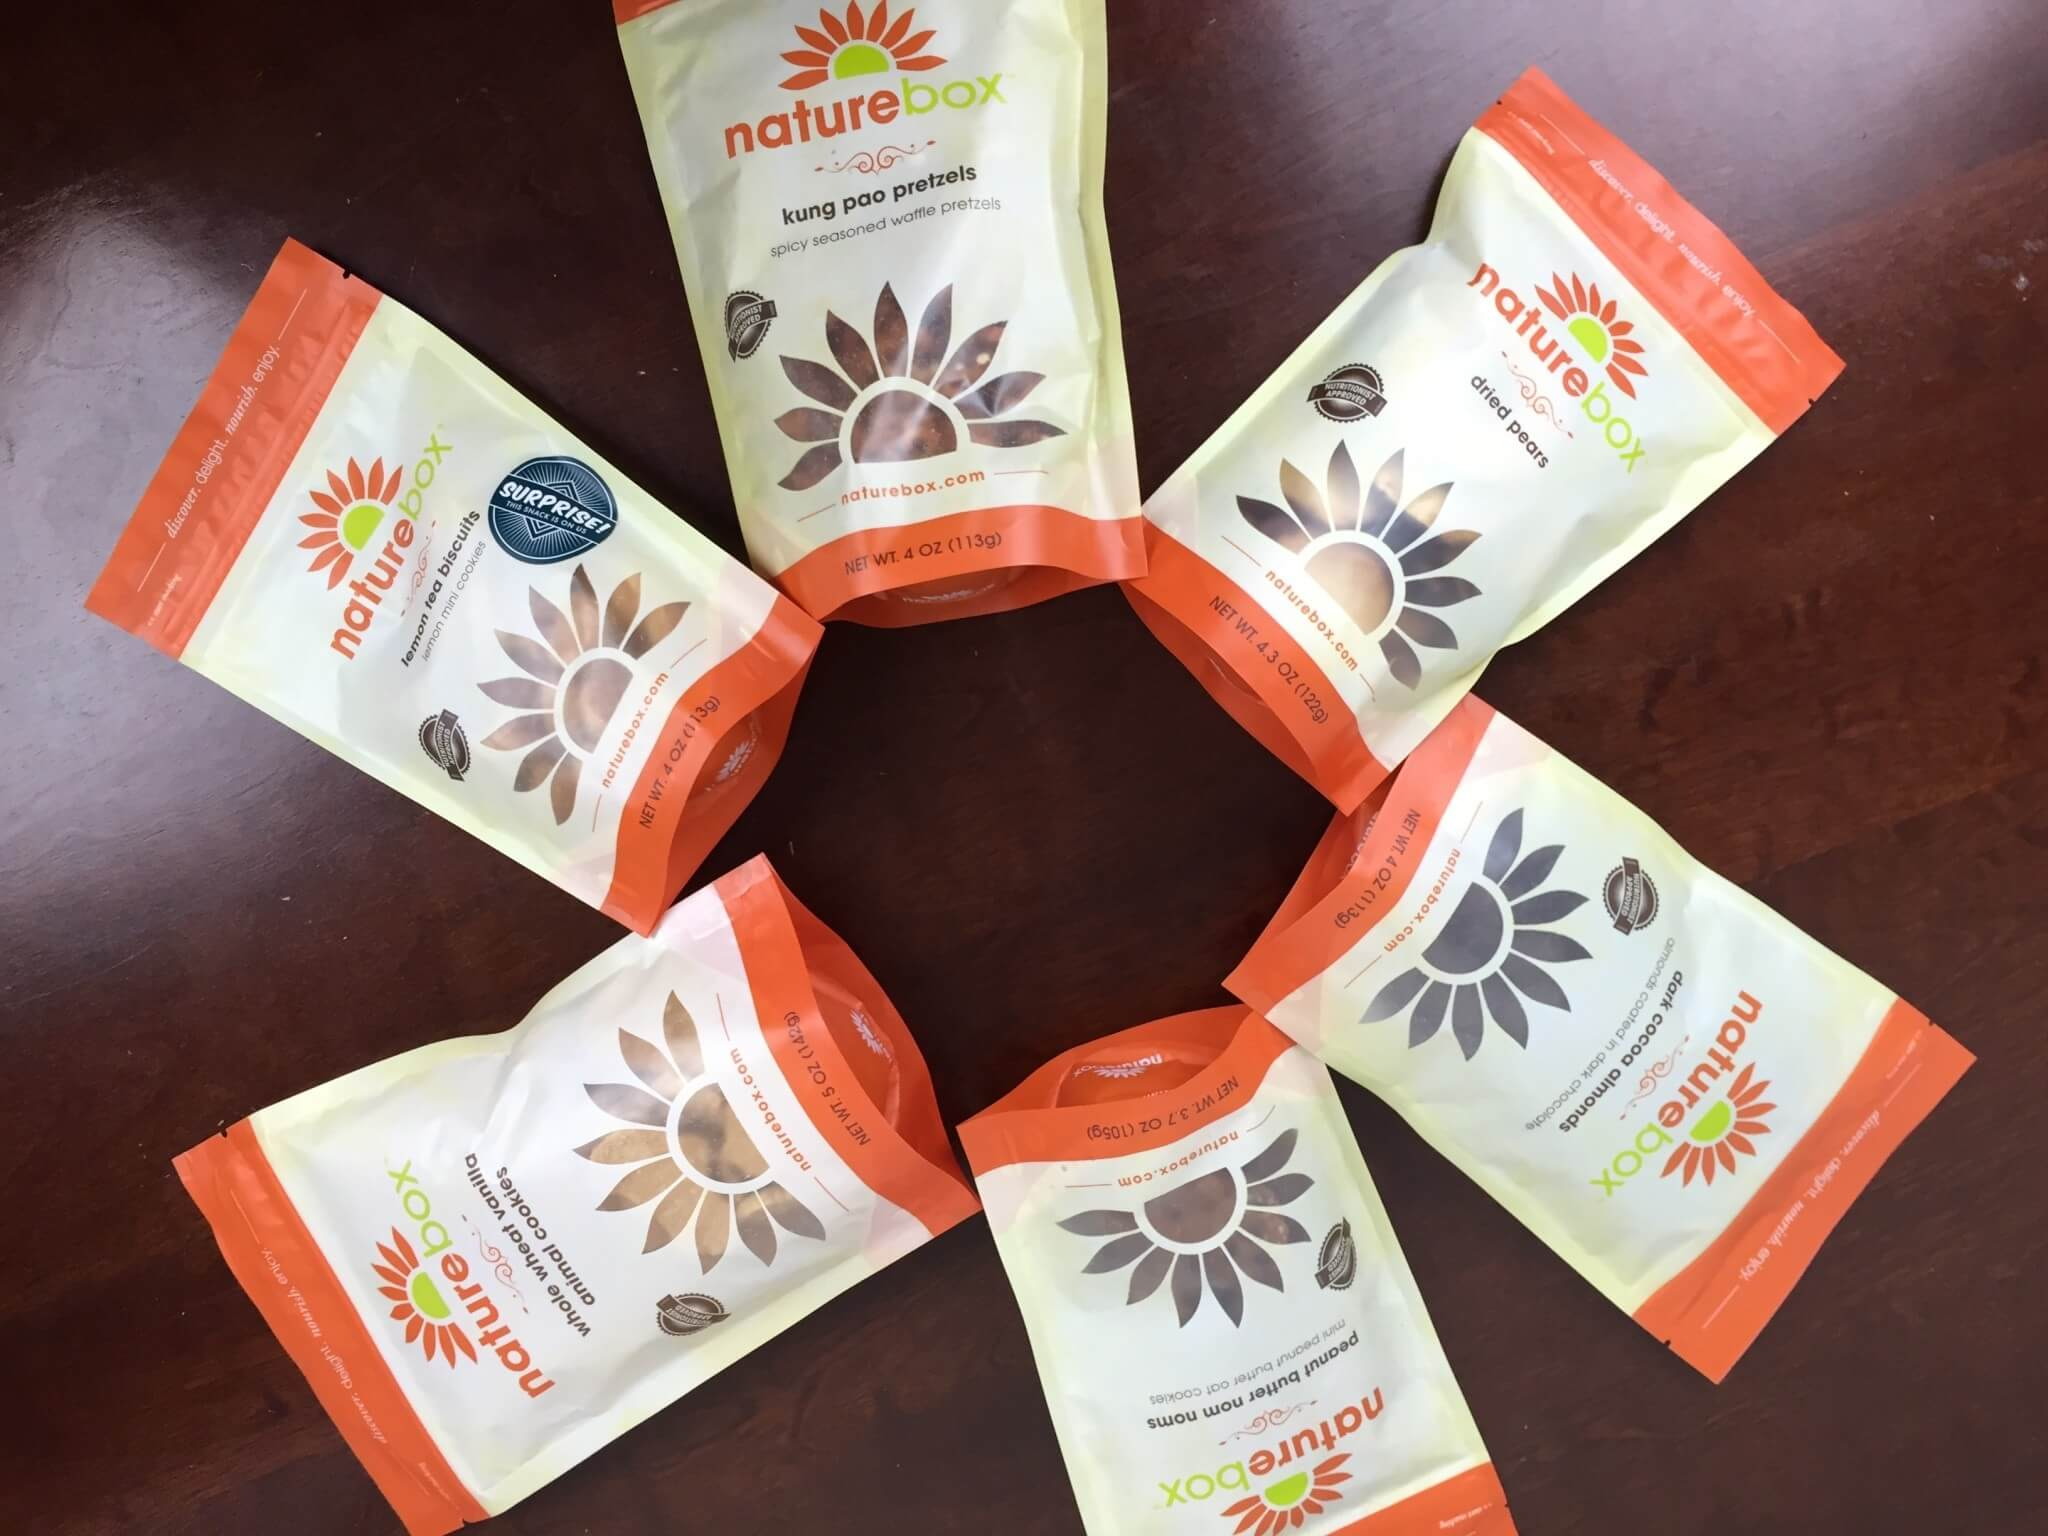 NatureBox April 2016 Subscription Box Review & 50% Off Coupon